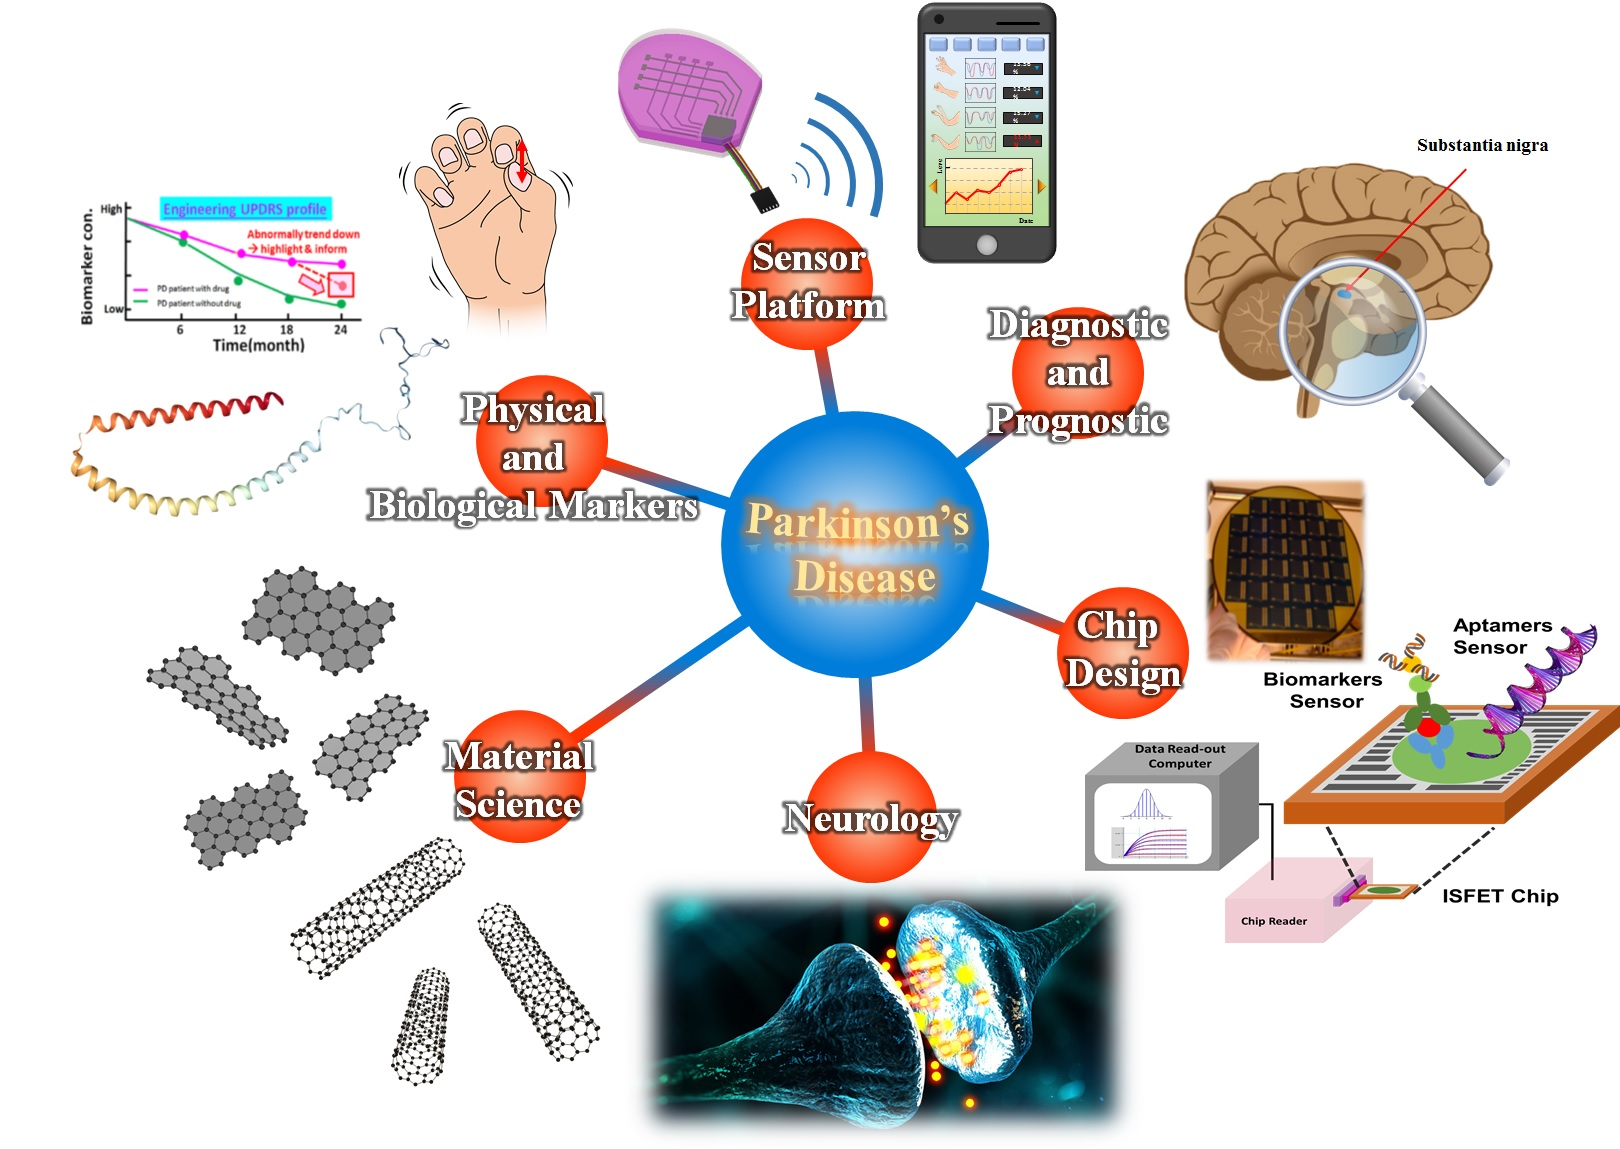 High-ThroughputSmart Platforms with Bio-Physiology-Marker Panels for Parkinson's Disease Progression